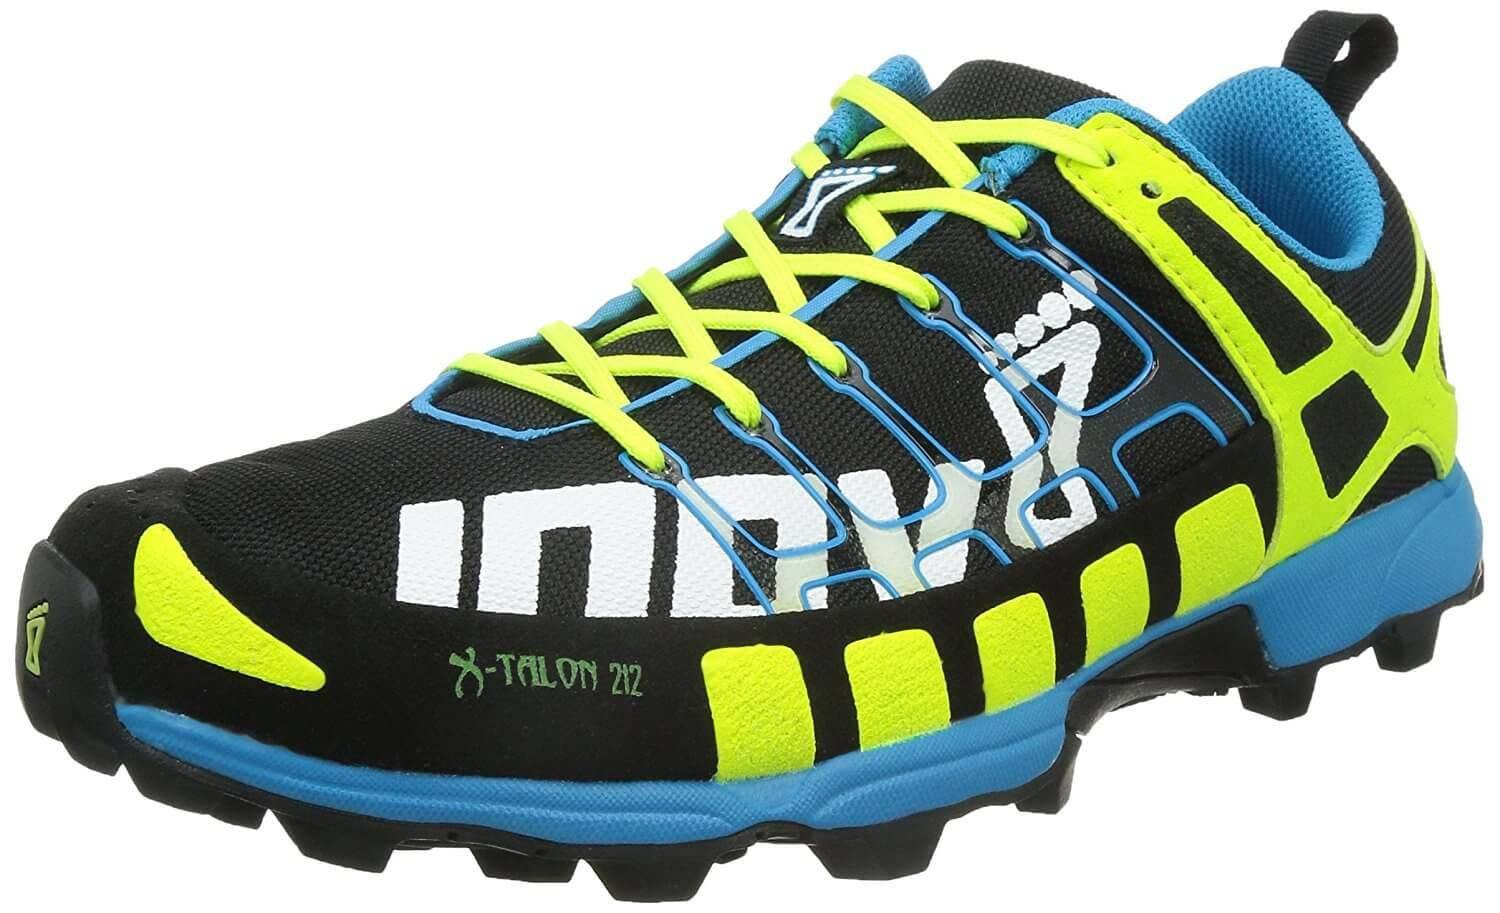 the Inov-8 X-Talon 212 is a dynamic trail runner that can traverse all terrains